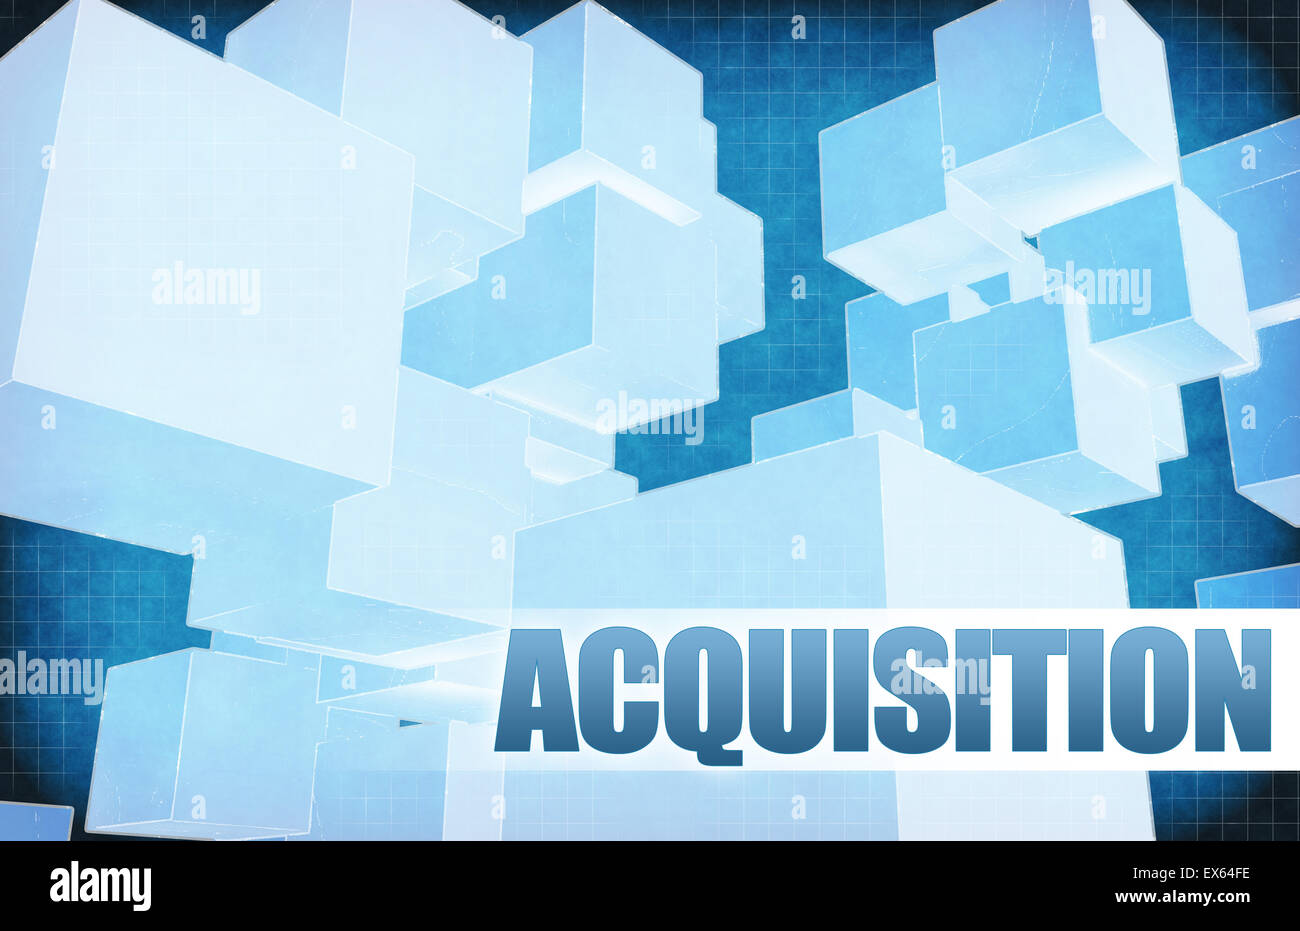 Acquisition on Futuristic Abstract for Presentation Slide - Stock Image